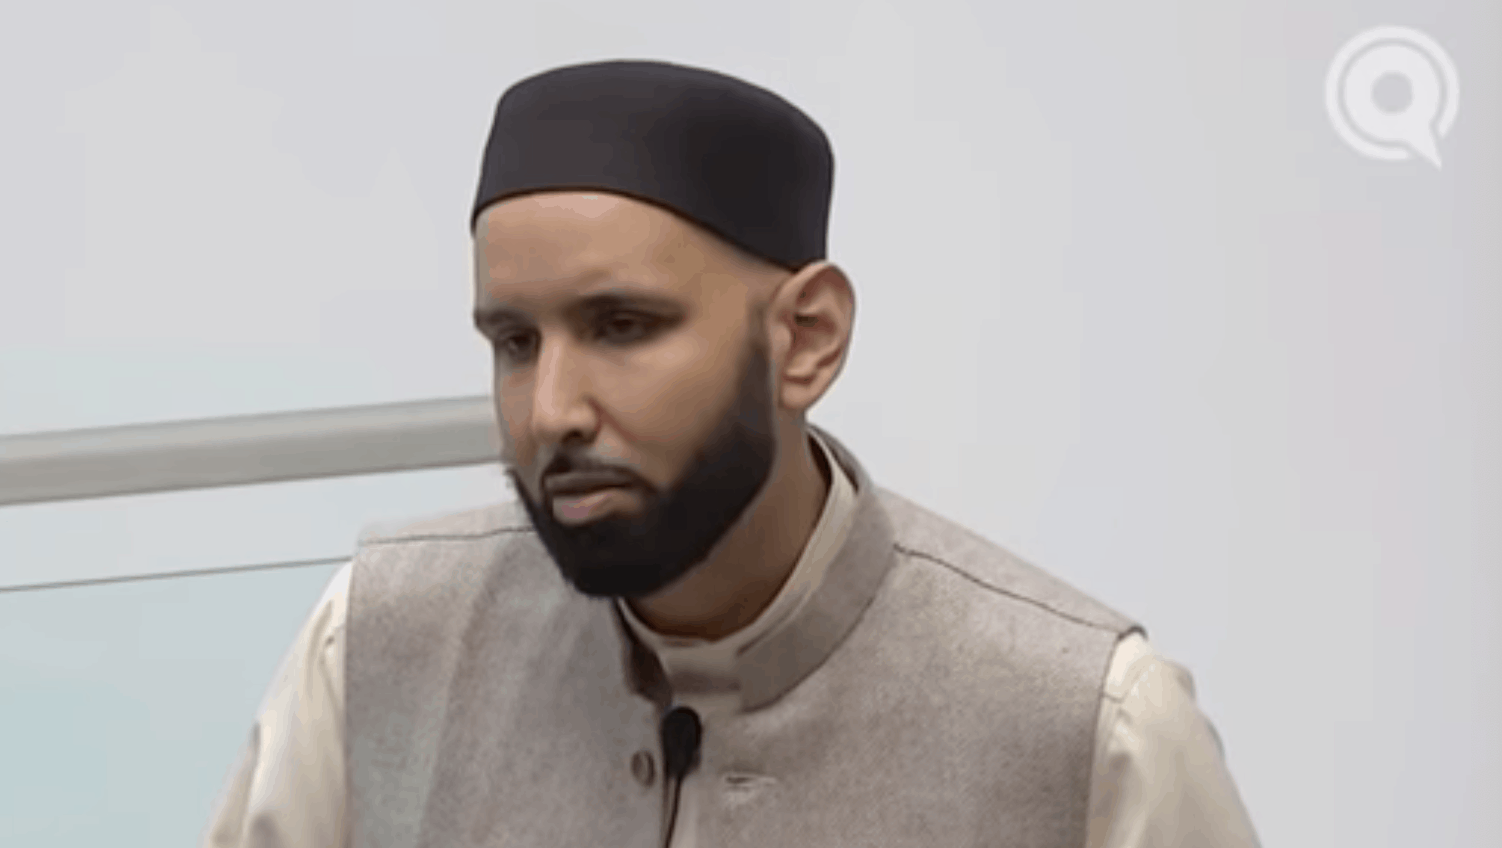 Omar Suleiman – When You Hit Your Lowest Point